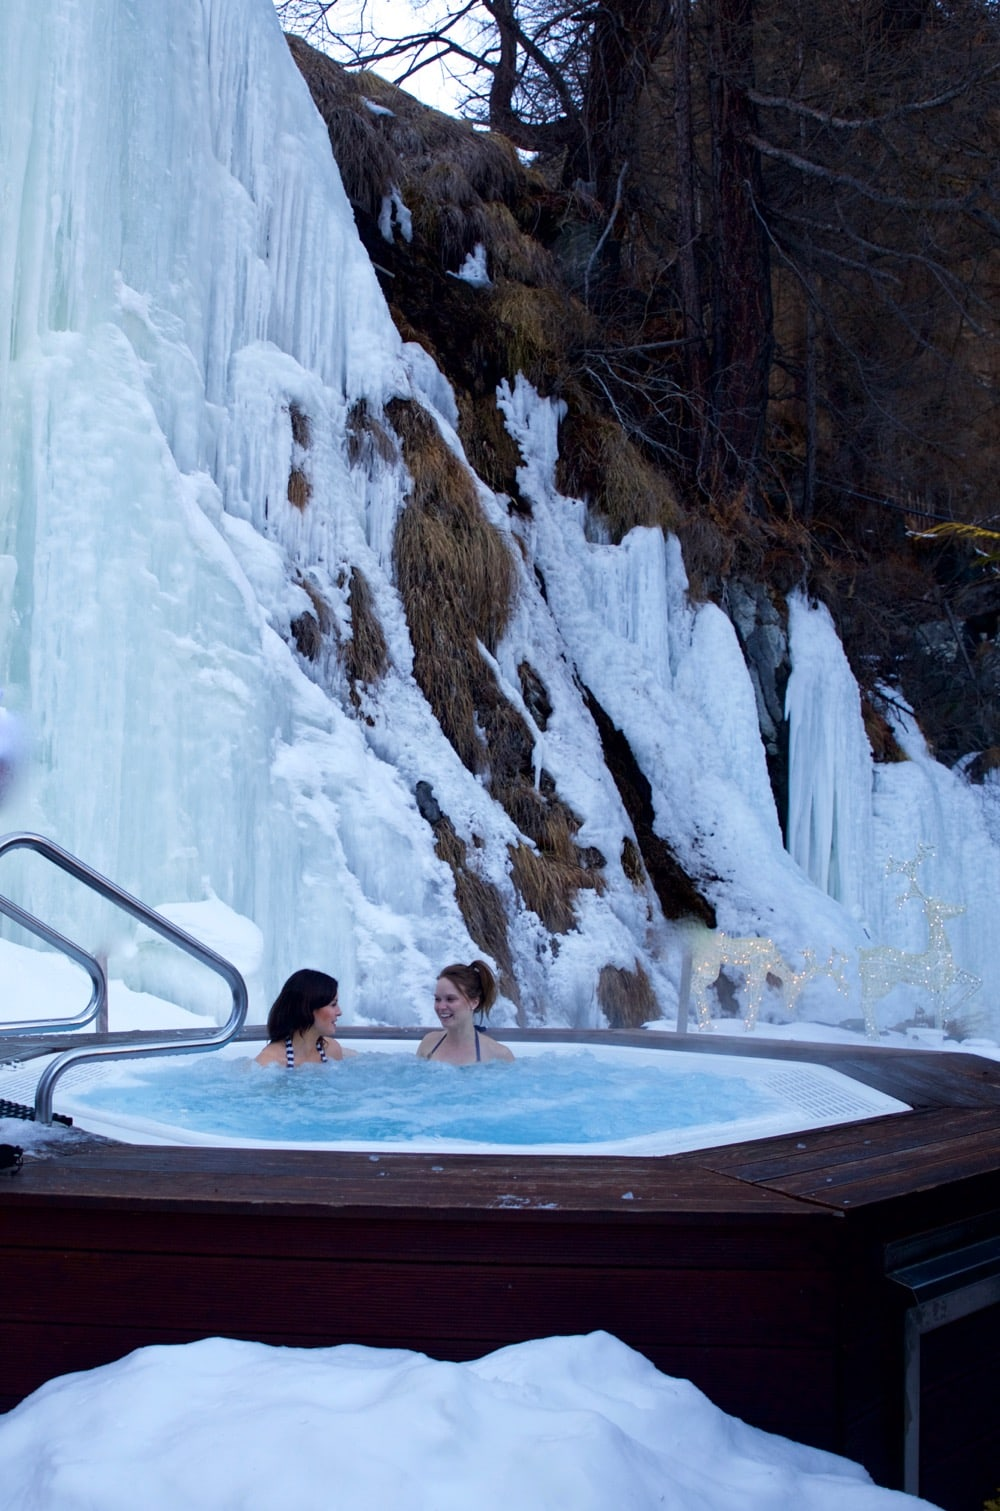 Jacuzzi time at Hotel Sonne Zermatt, Switzerland